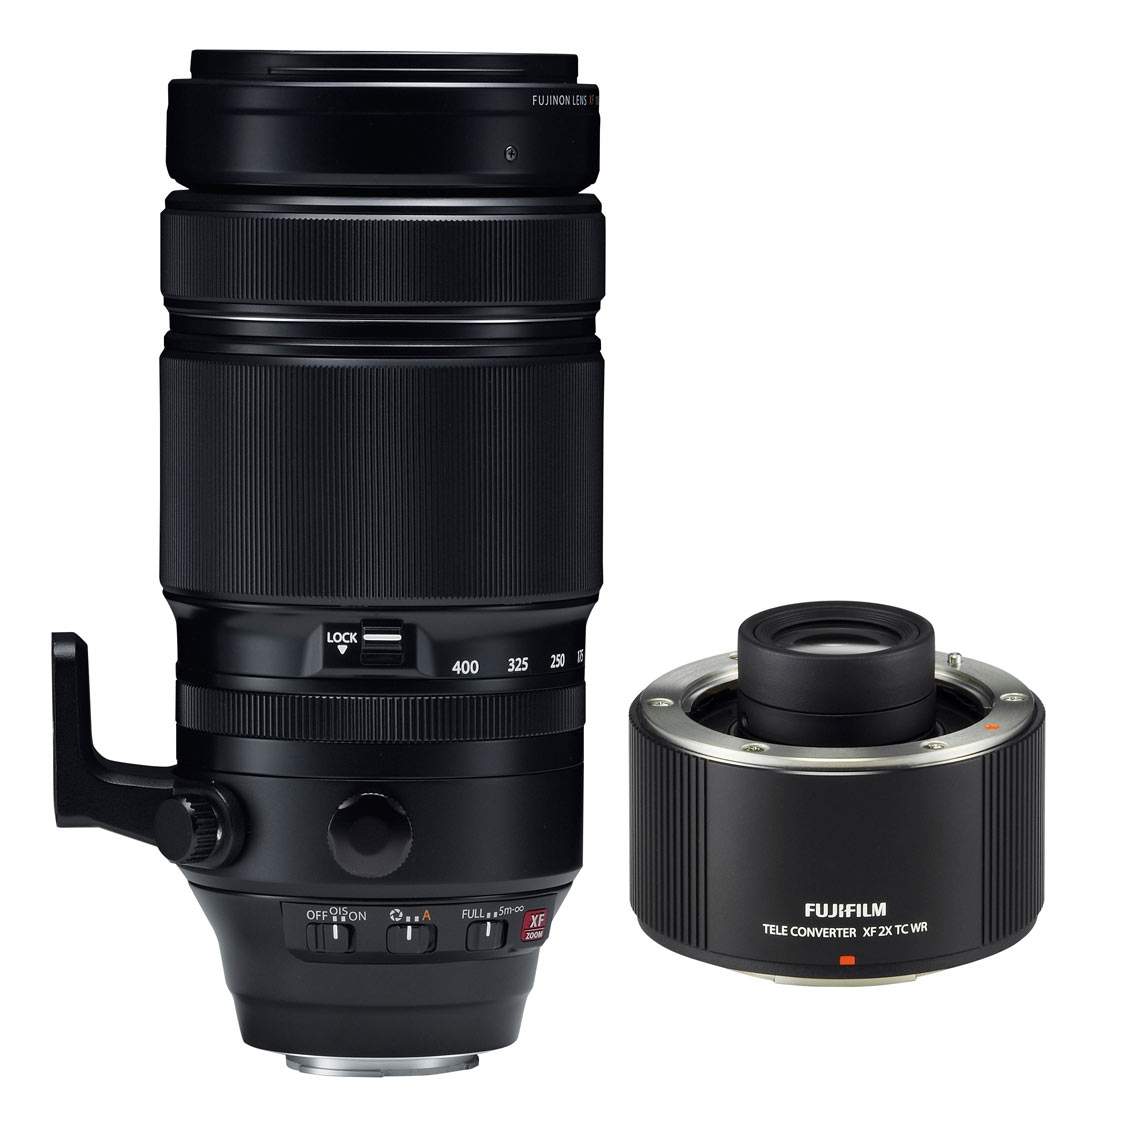 Fuji XF 100-400mm F4.5-5.6 R LM OIS WR Lens and 2.0X Teleconverter